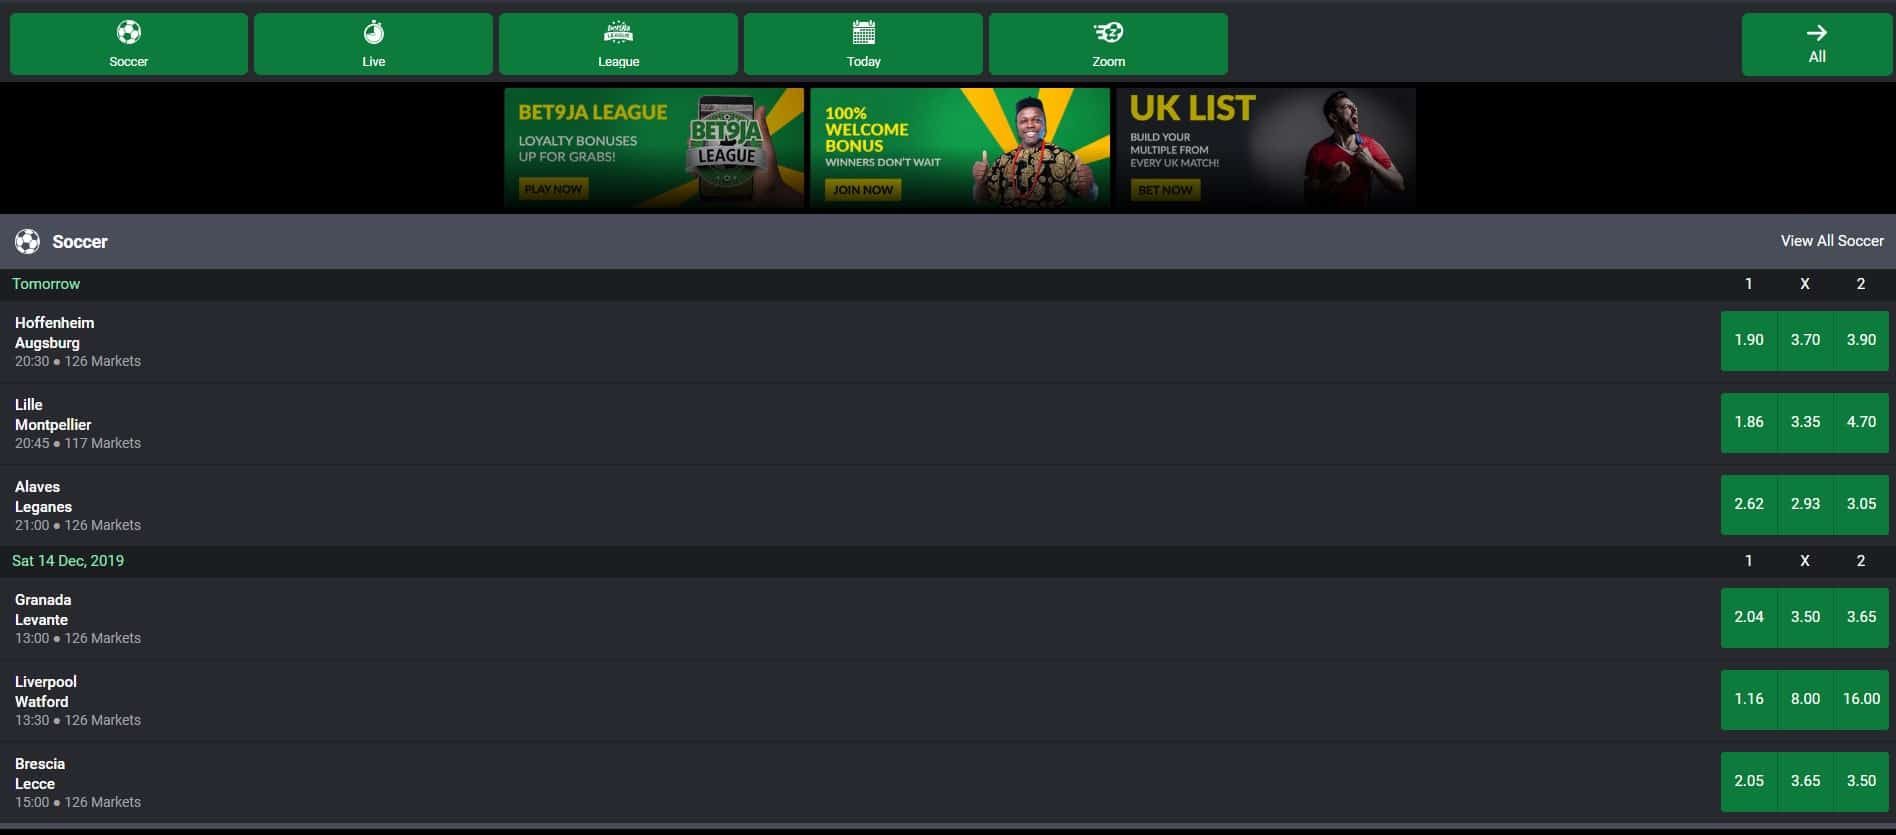 Mobile App - Bet9ja Sports Betting Review